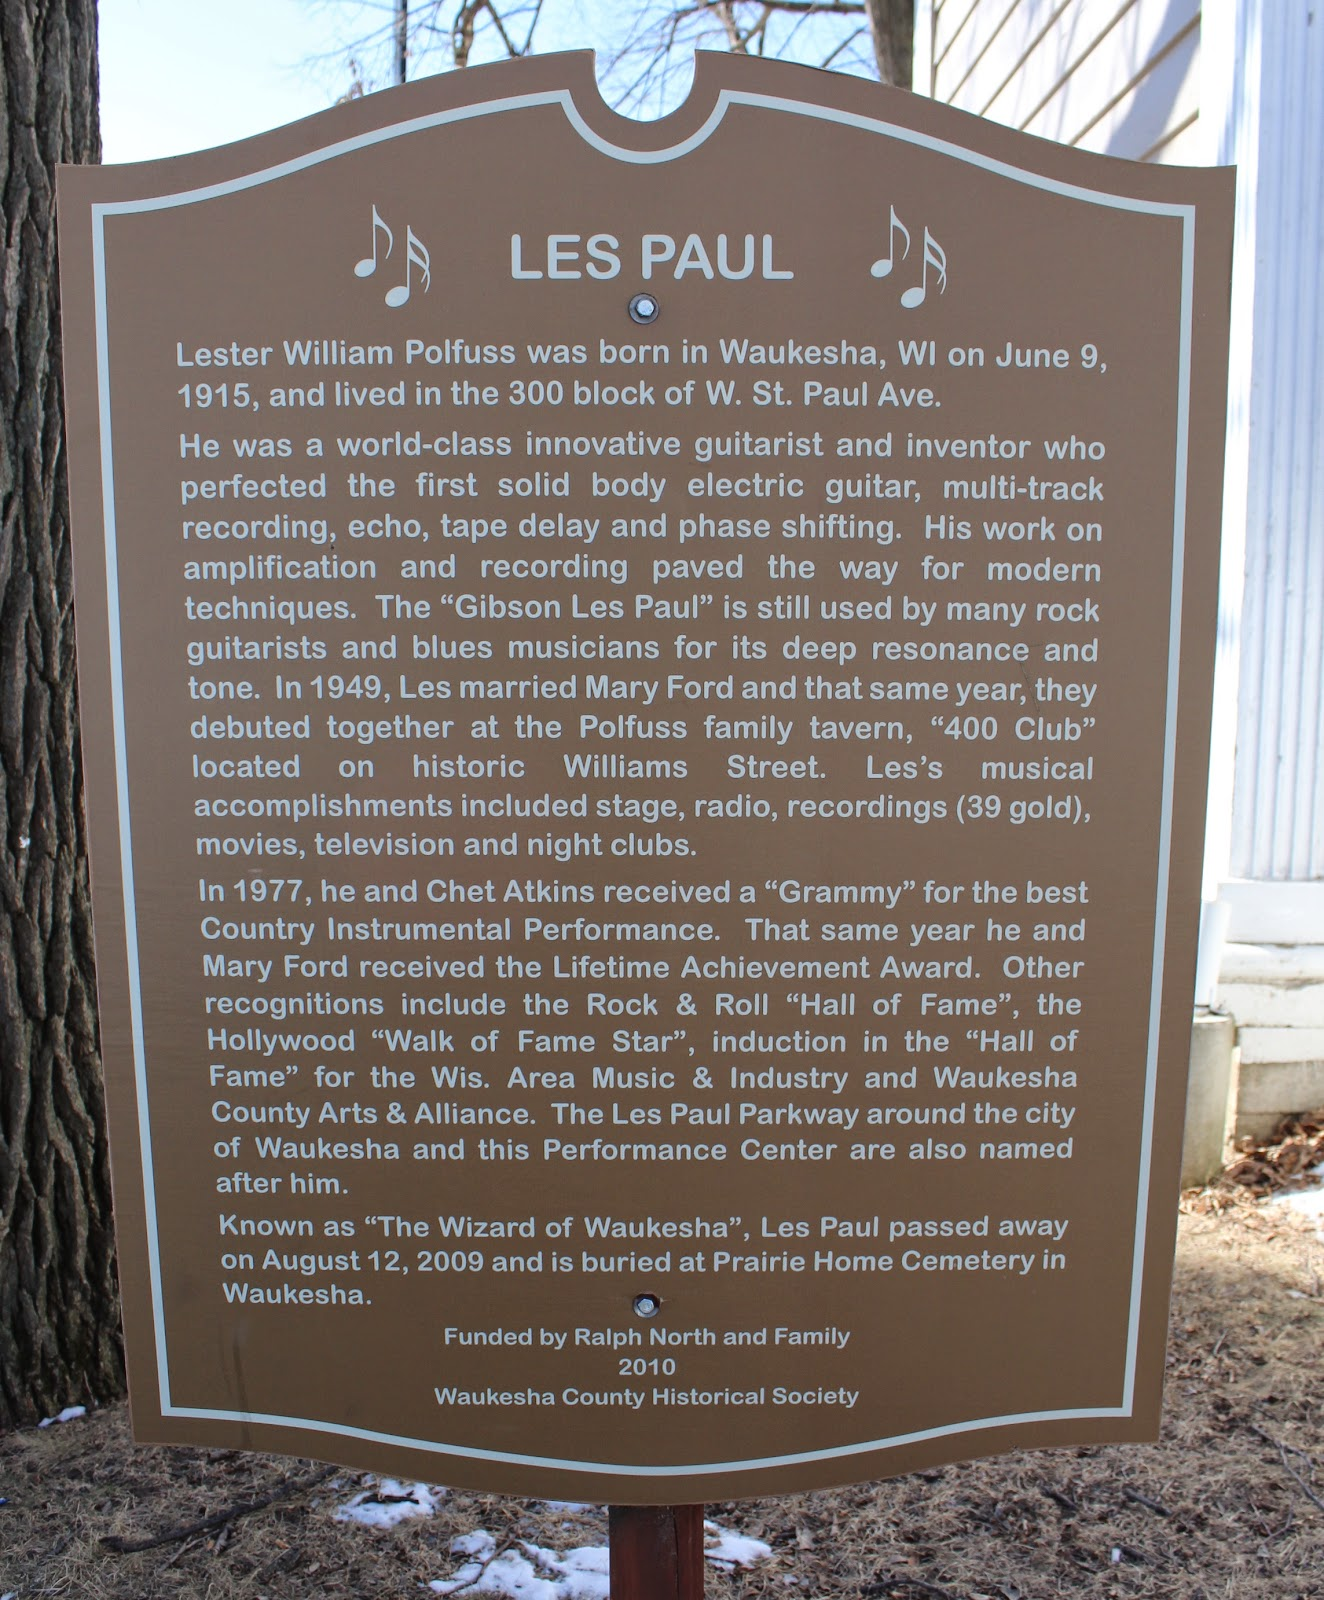 a biography of les paul as a musician and inventor born in waukesha wisconsin Directory of famous wisconsin people  john bardeen inventor, madison carrie  catt woman suffragist, ripon ellen corby  les paul musician, waukesha.